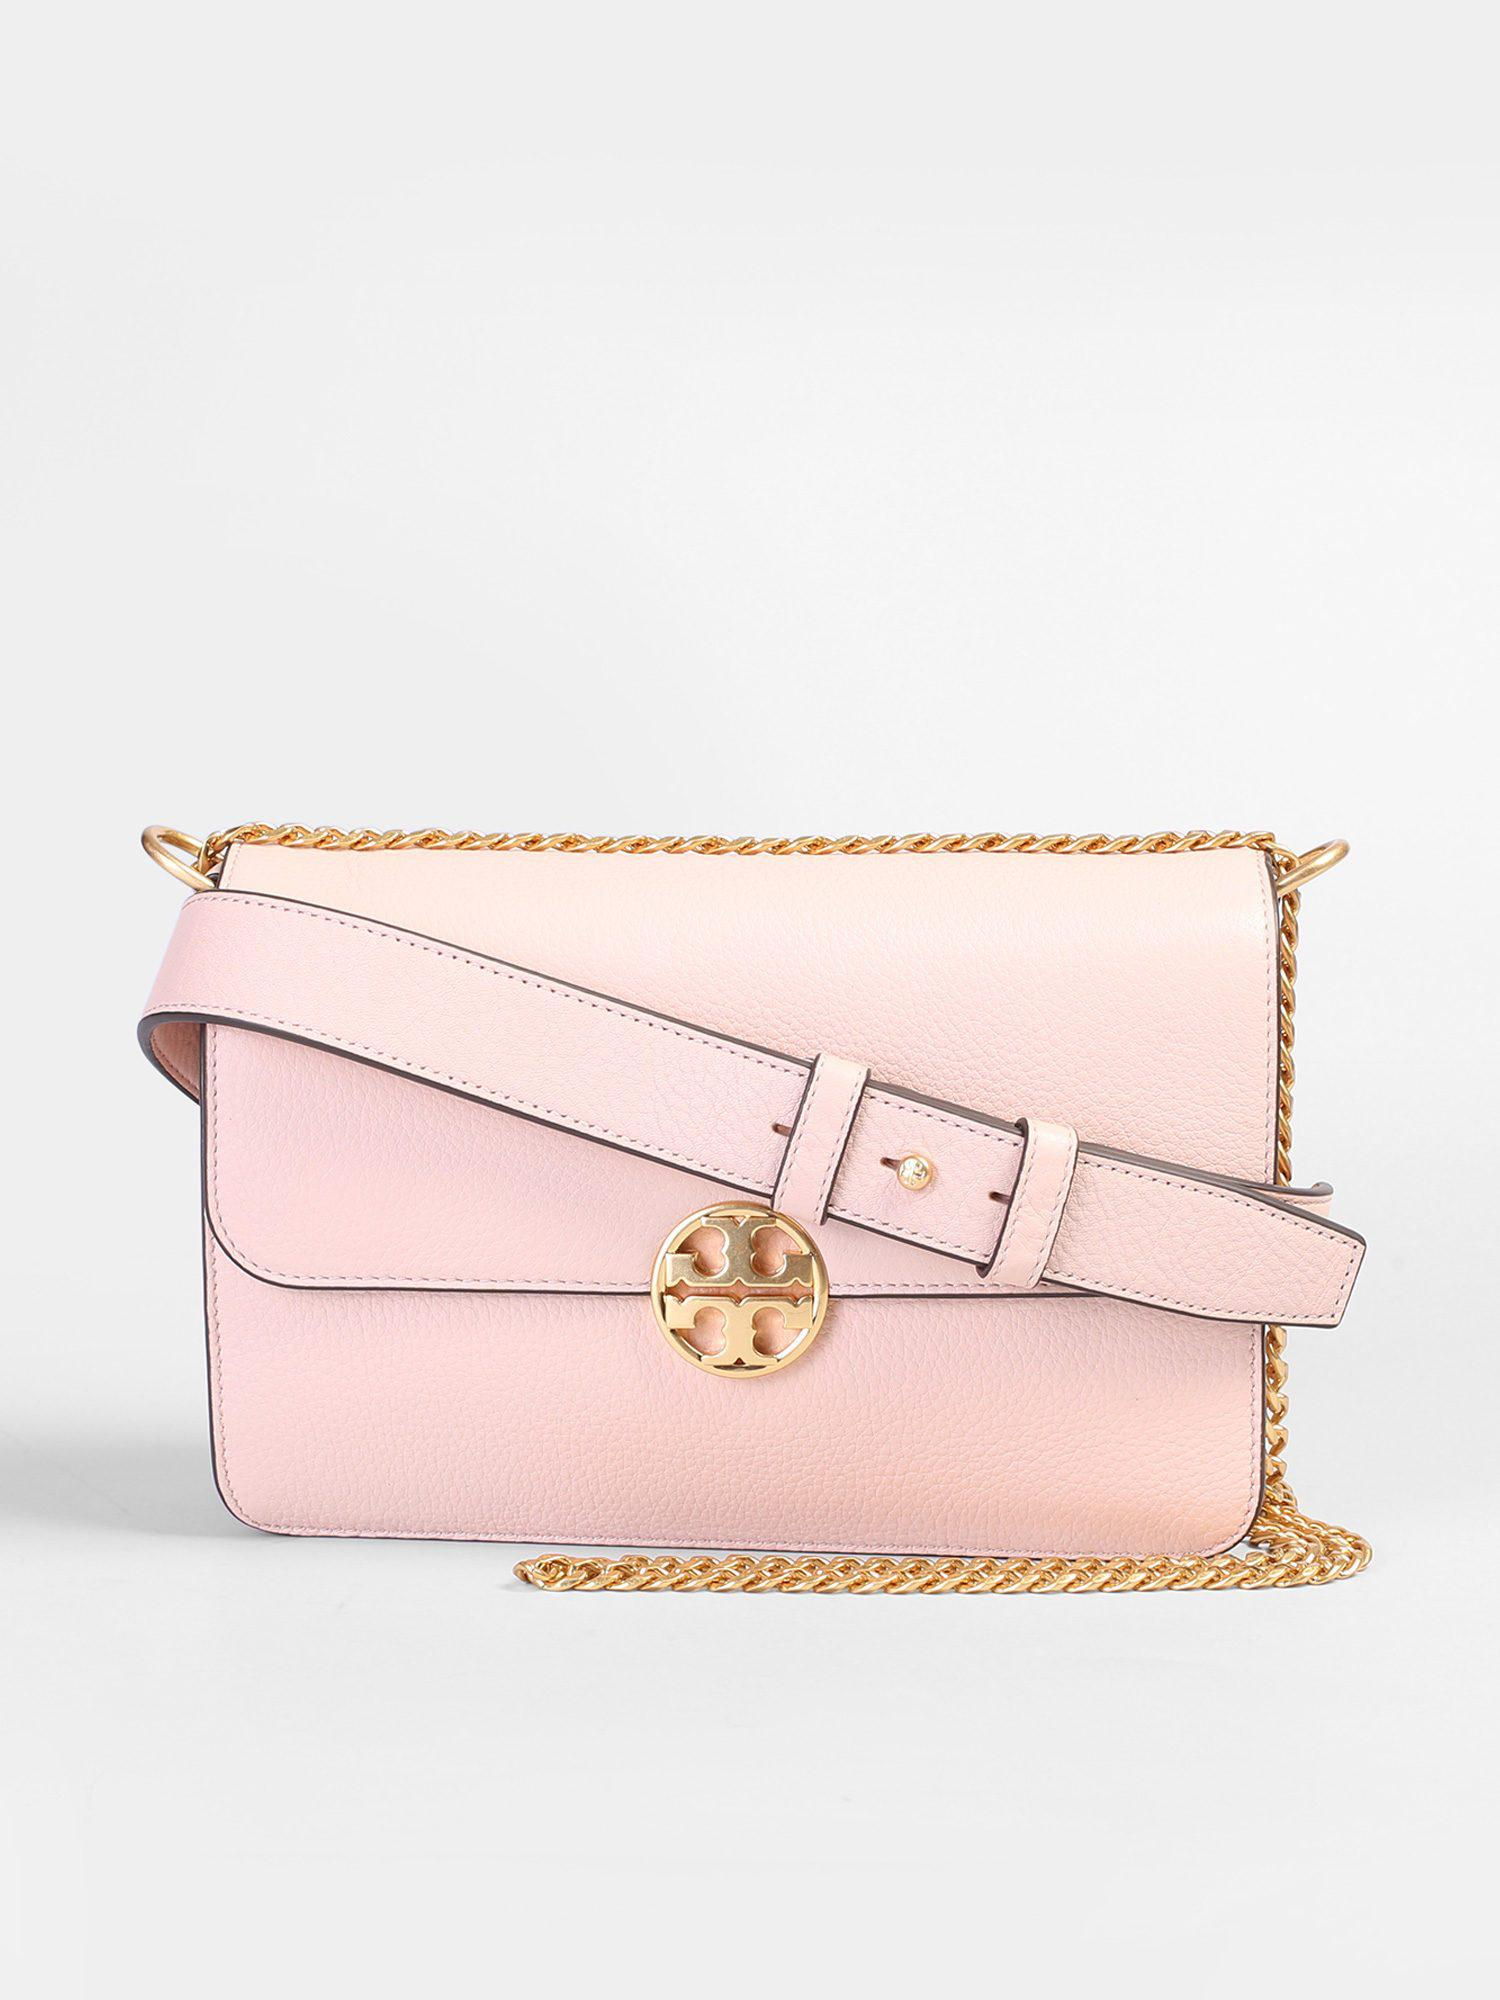 94c621403b8a Lyst - Tory Burch Chelsea Leather Shoulder Bag in Pink